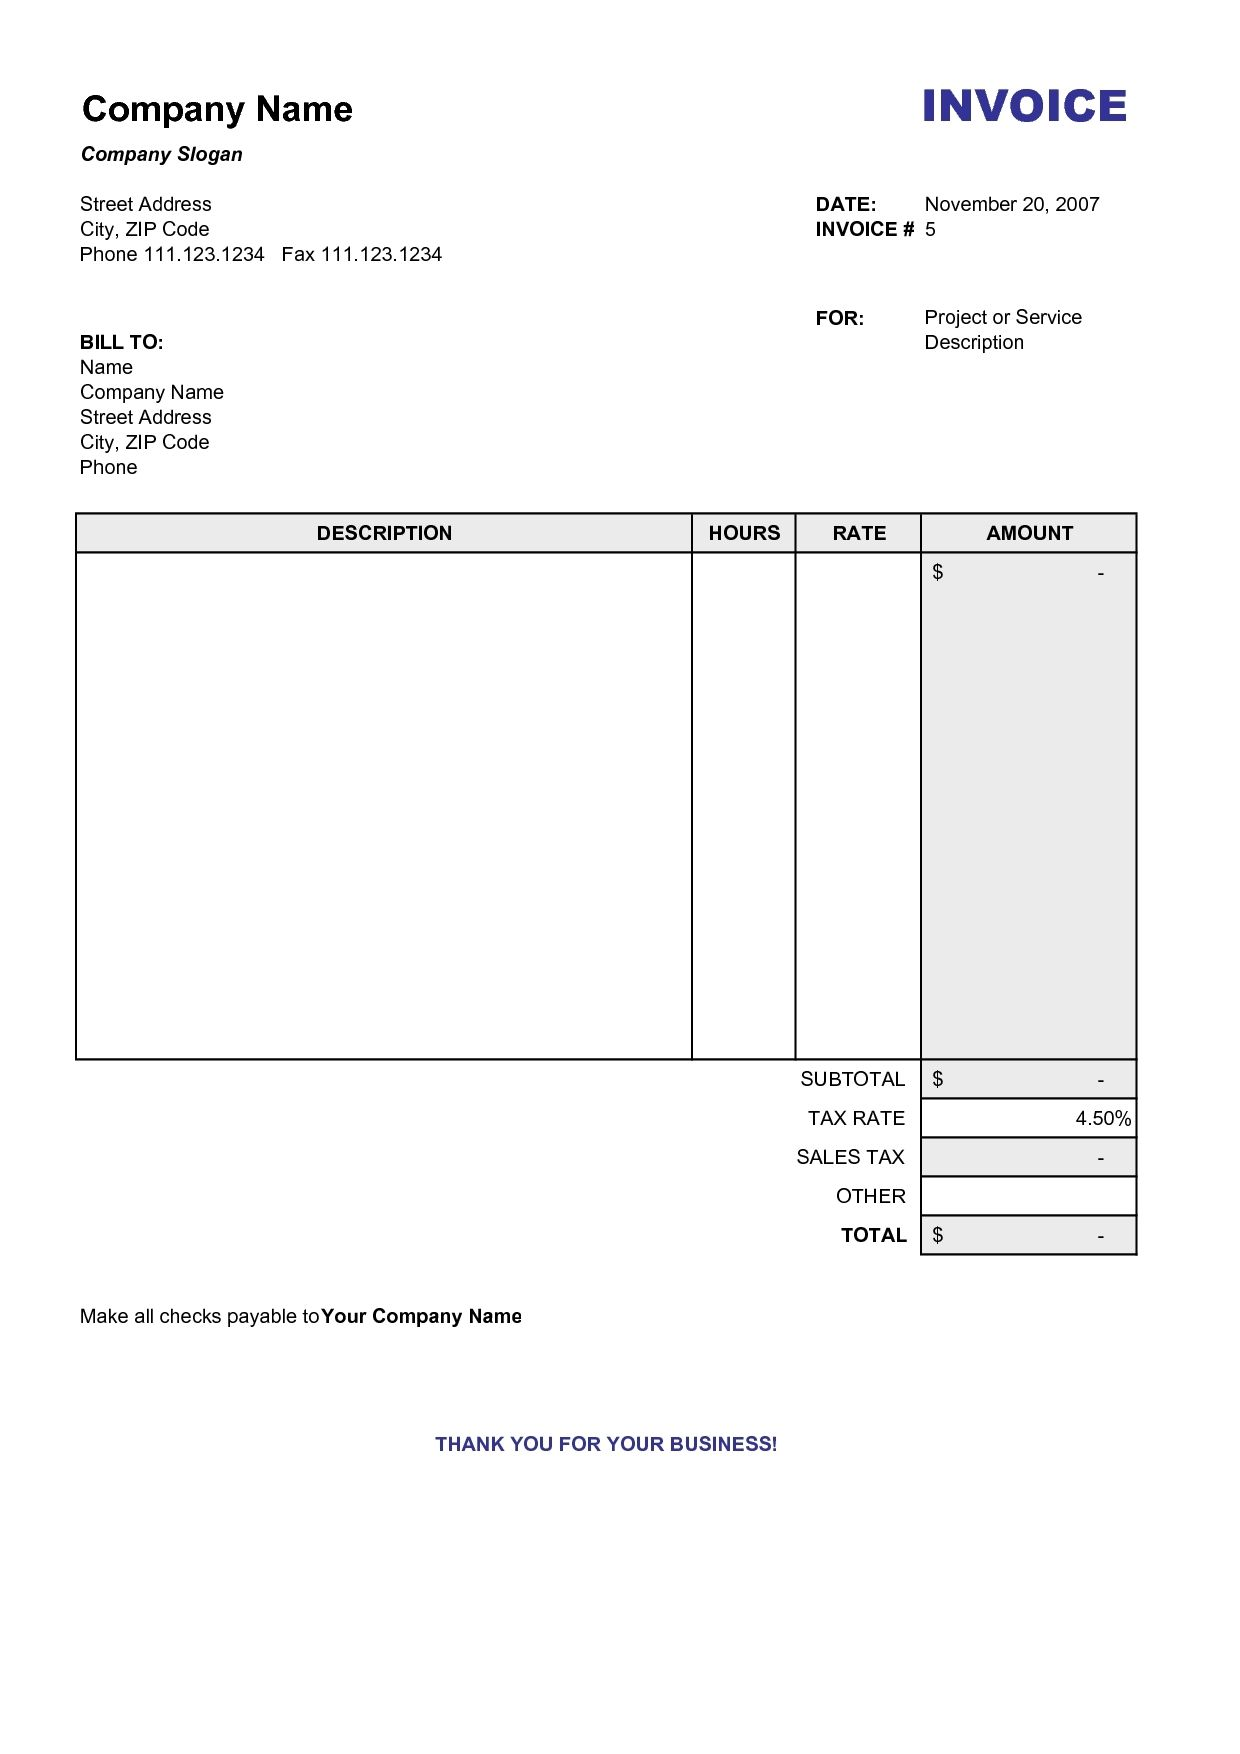 Copy Of A Blank Invoice Invoice Template Free Copy Of Blank Invoice